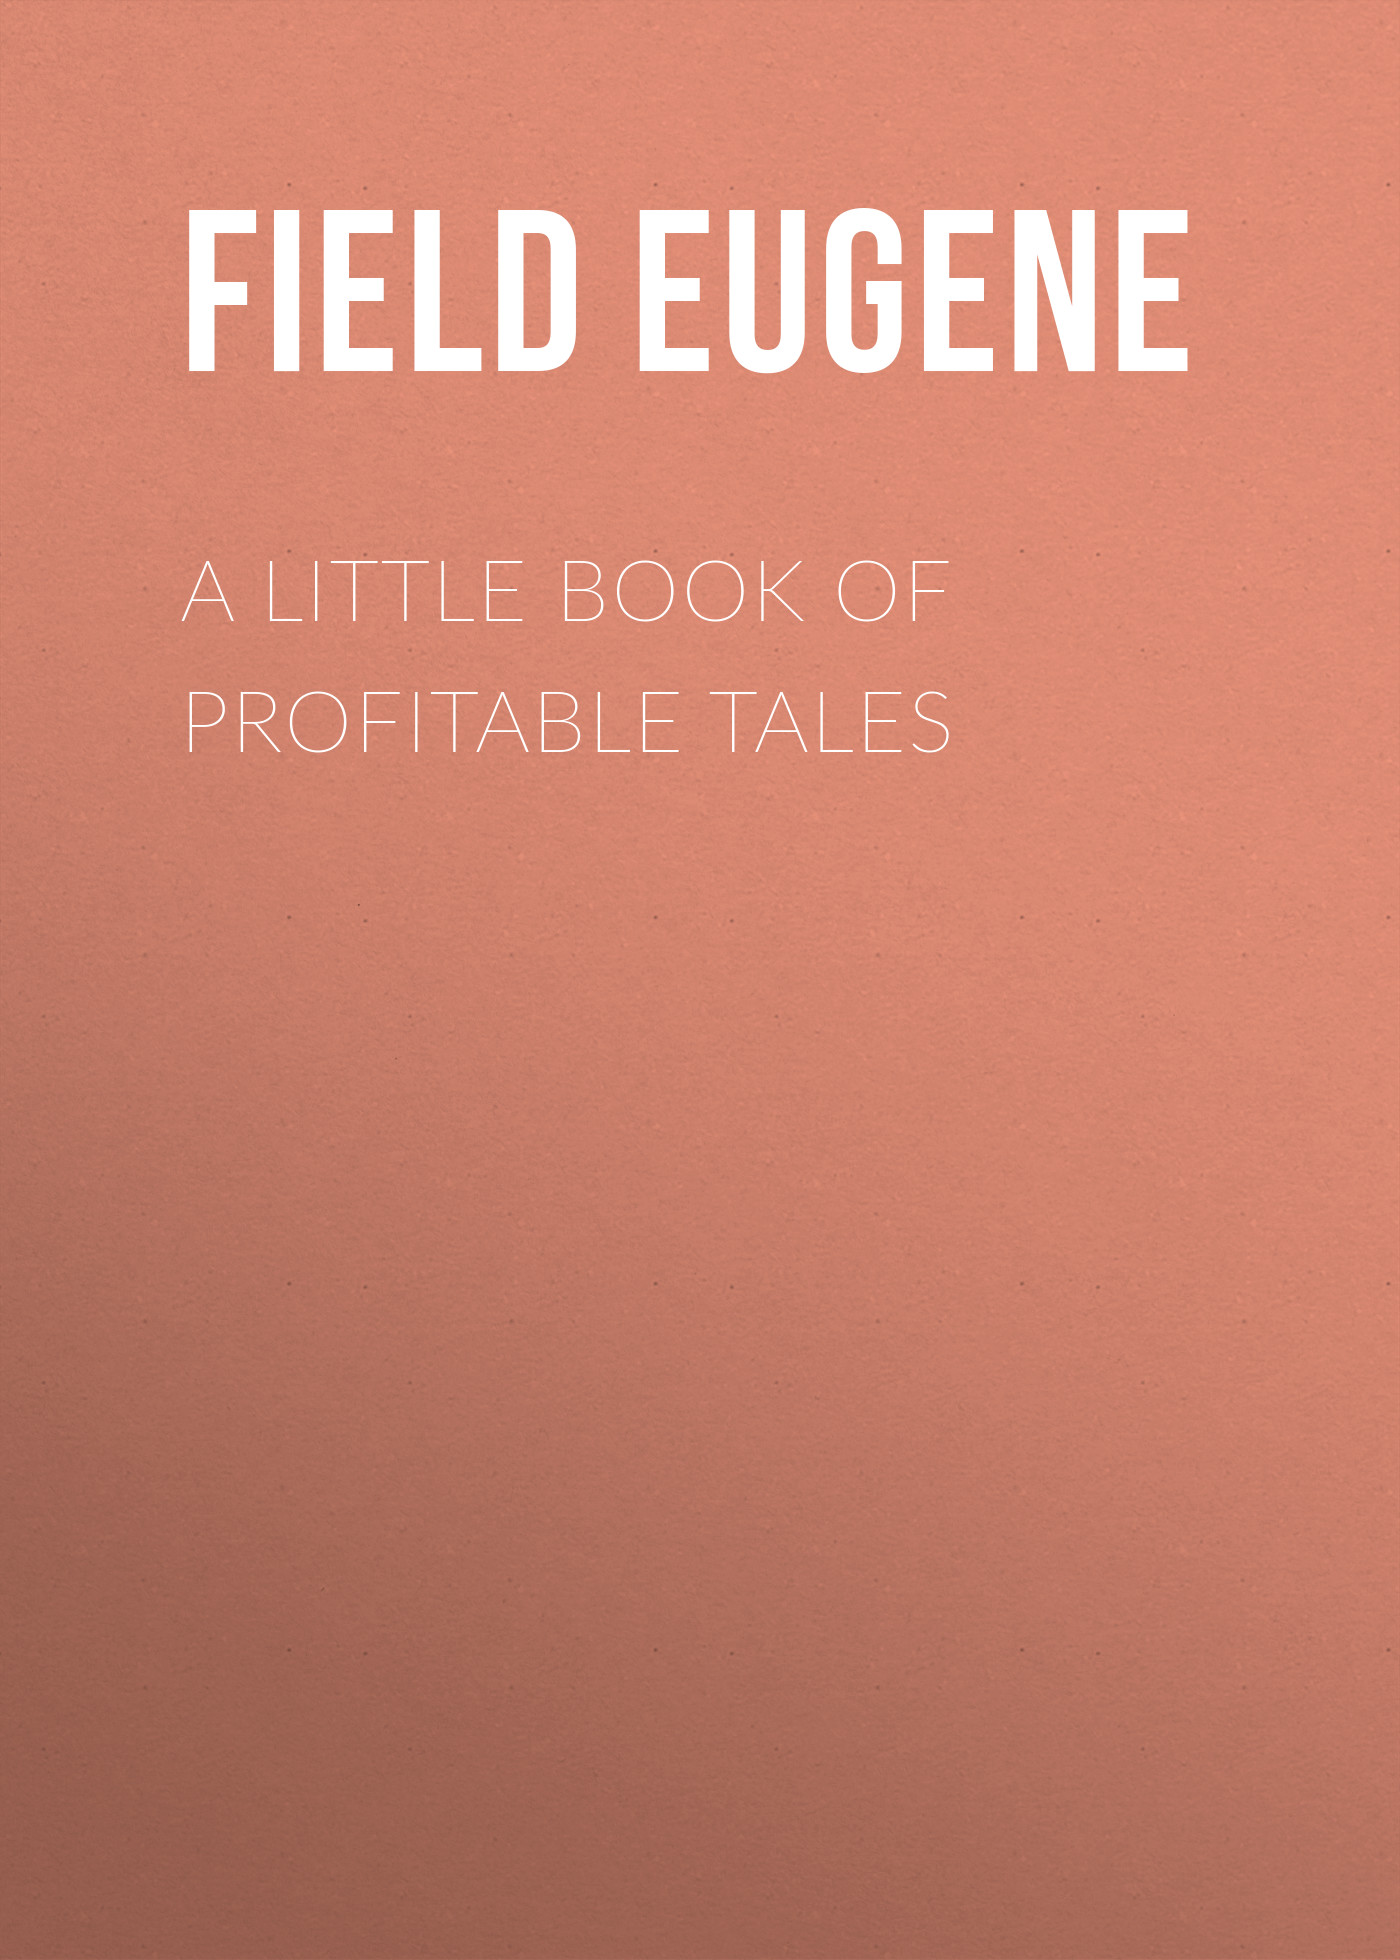 Field Eugene A Little Book of Profitable Tales addicted синие кашемировые брюки